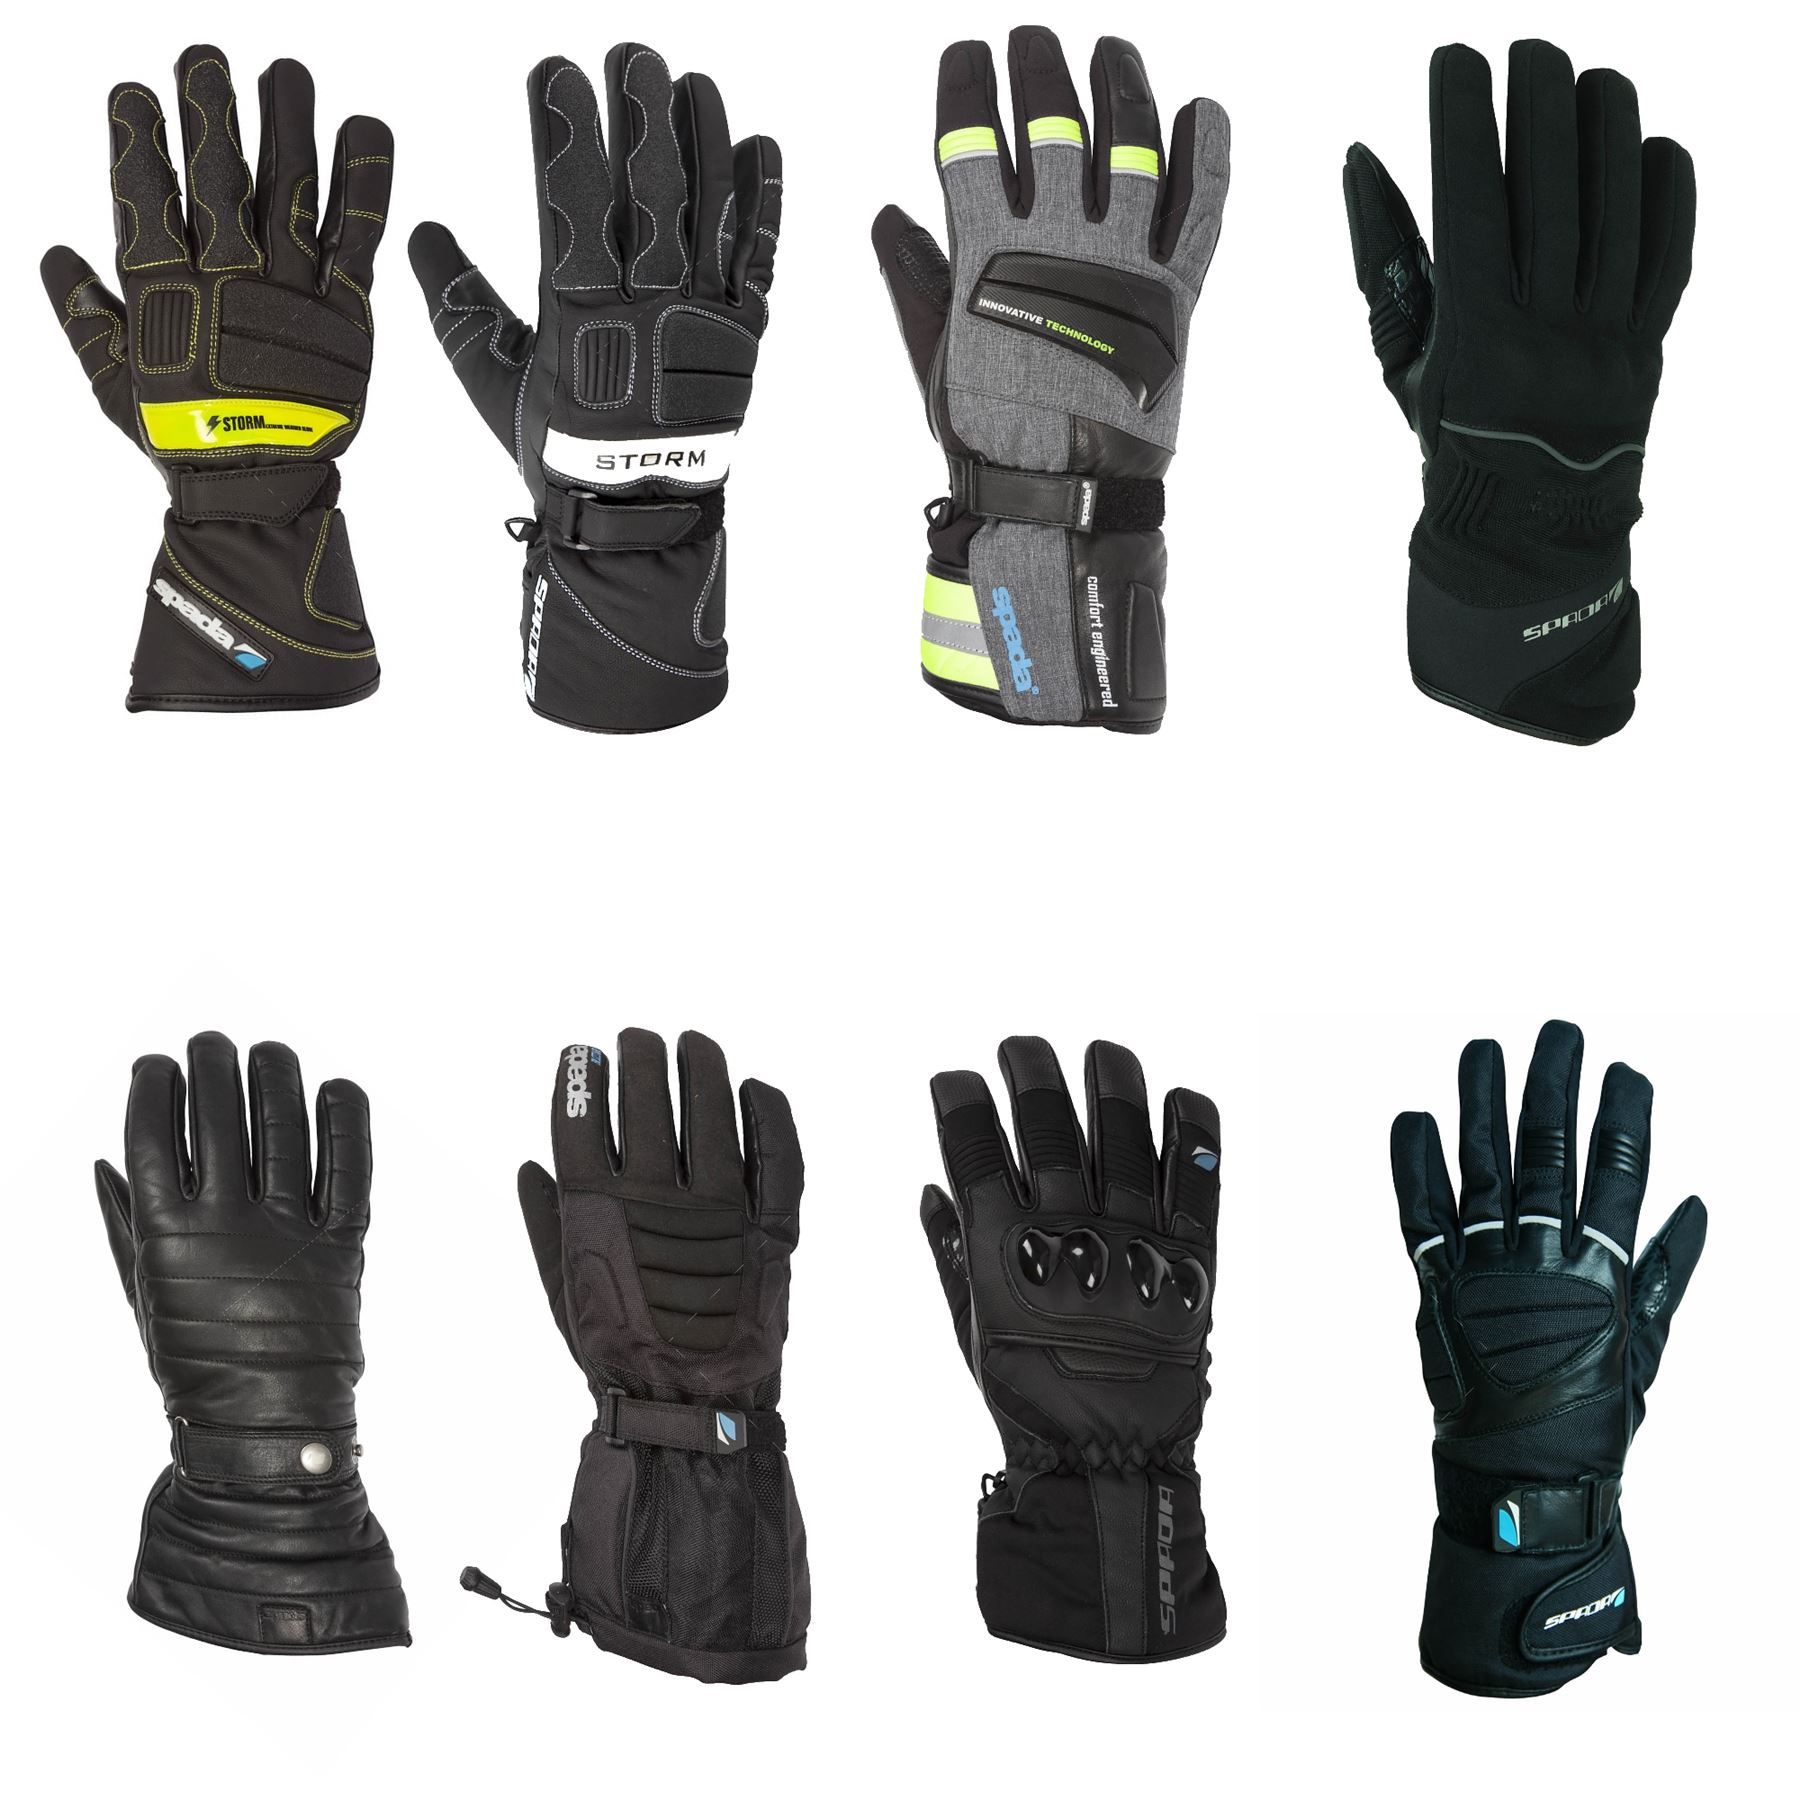 Spada-Waterproof-Motorcycle-Gloves-Winter-Touring-Commuting-All-Styles-amp-Sizes